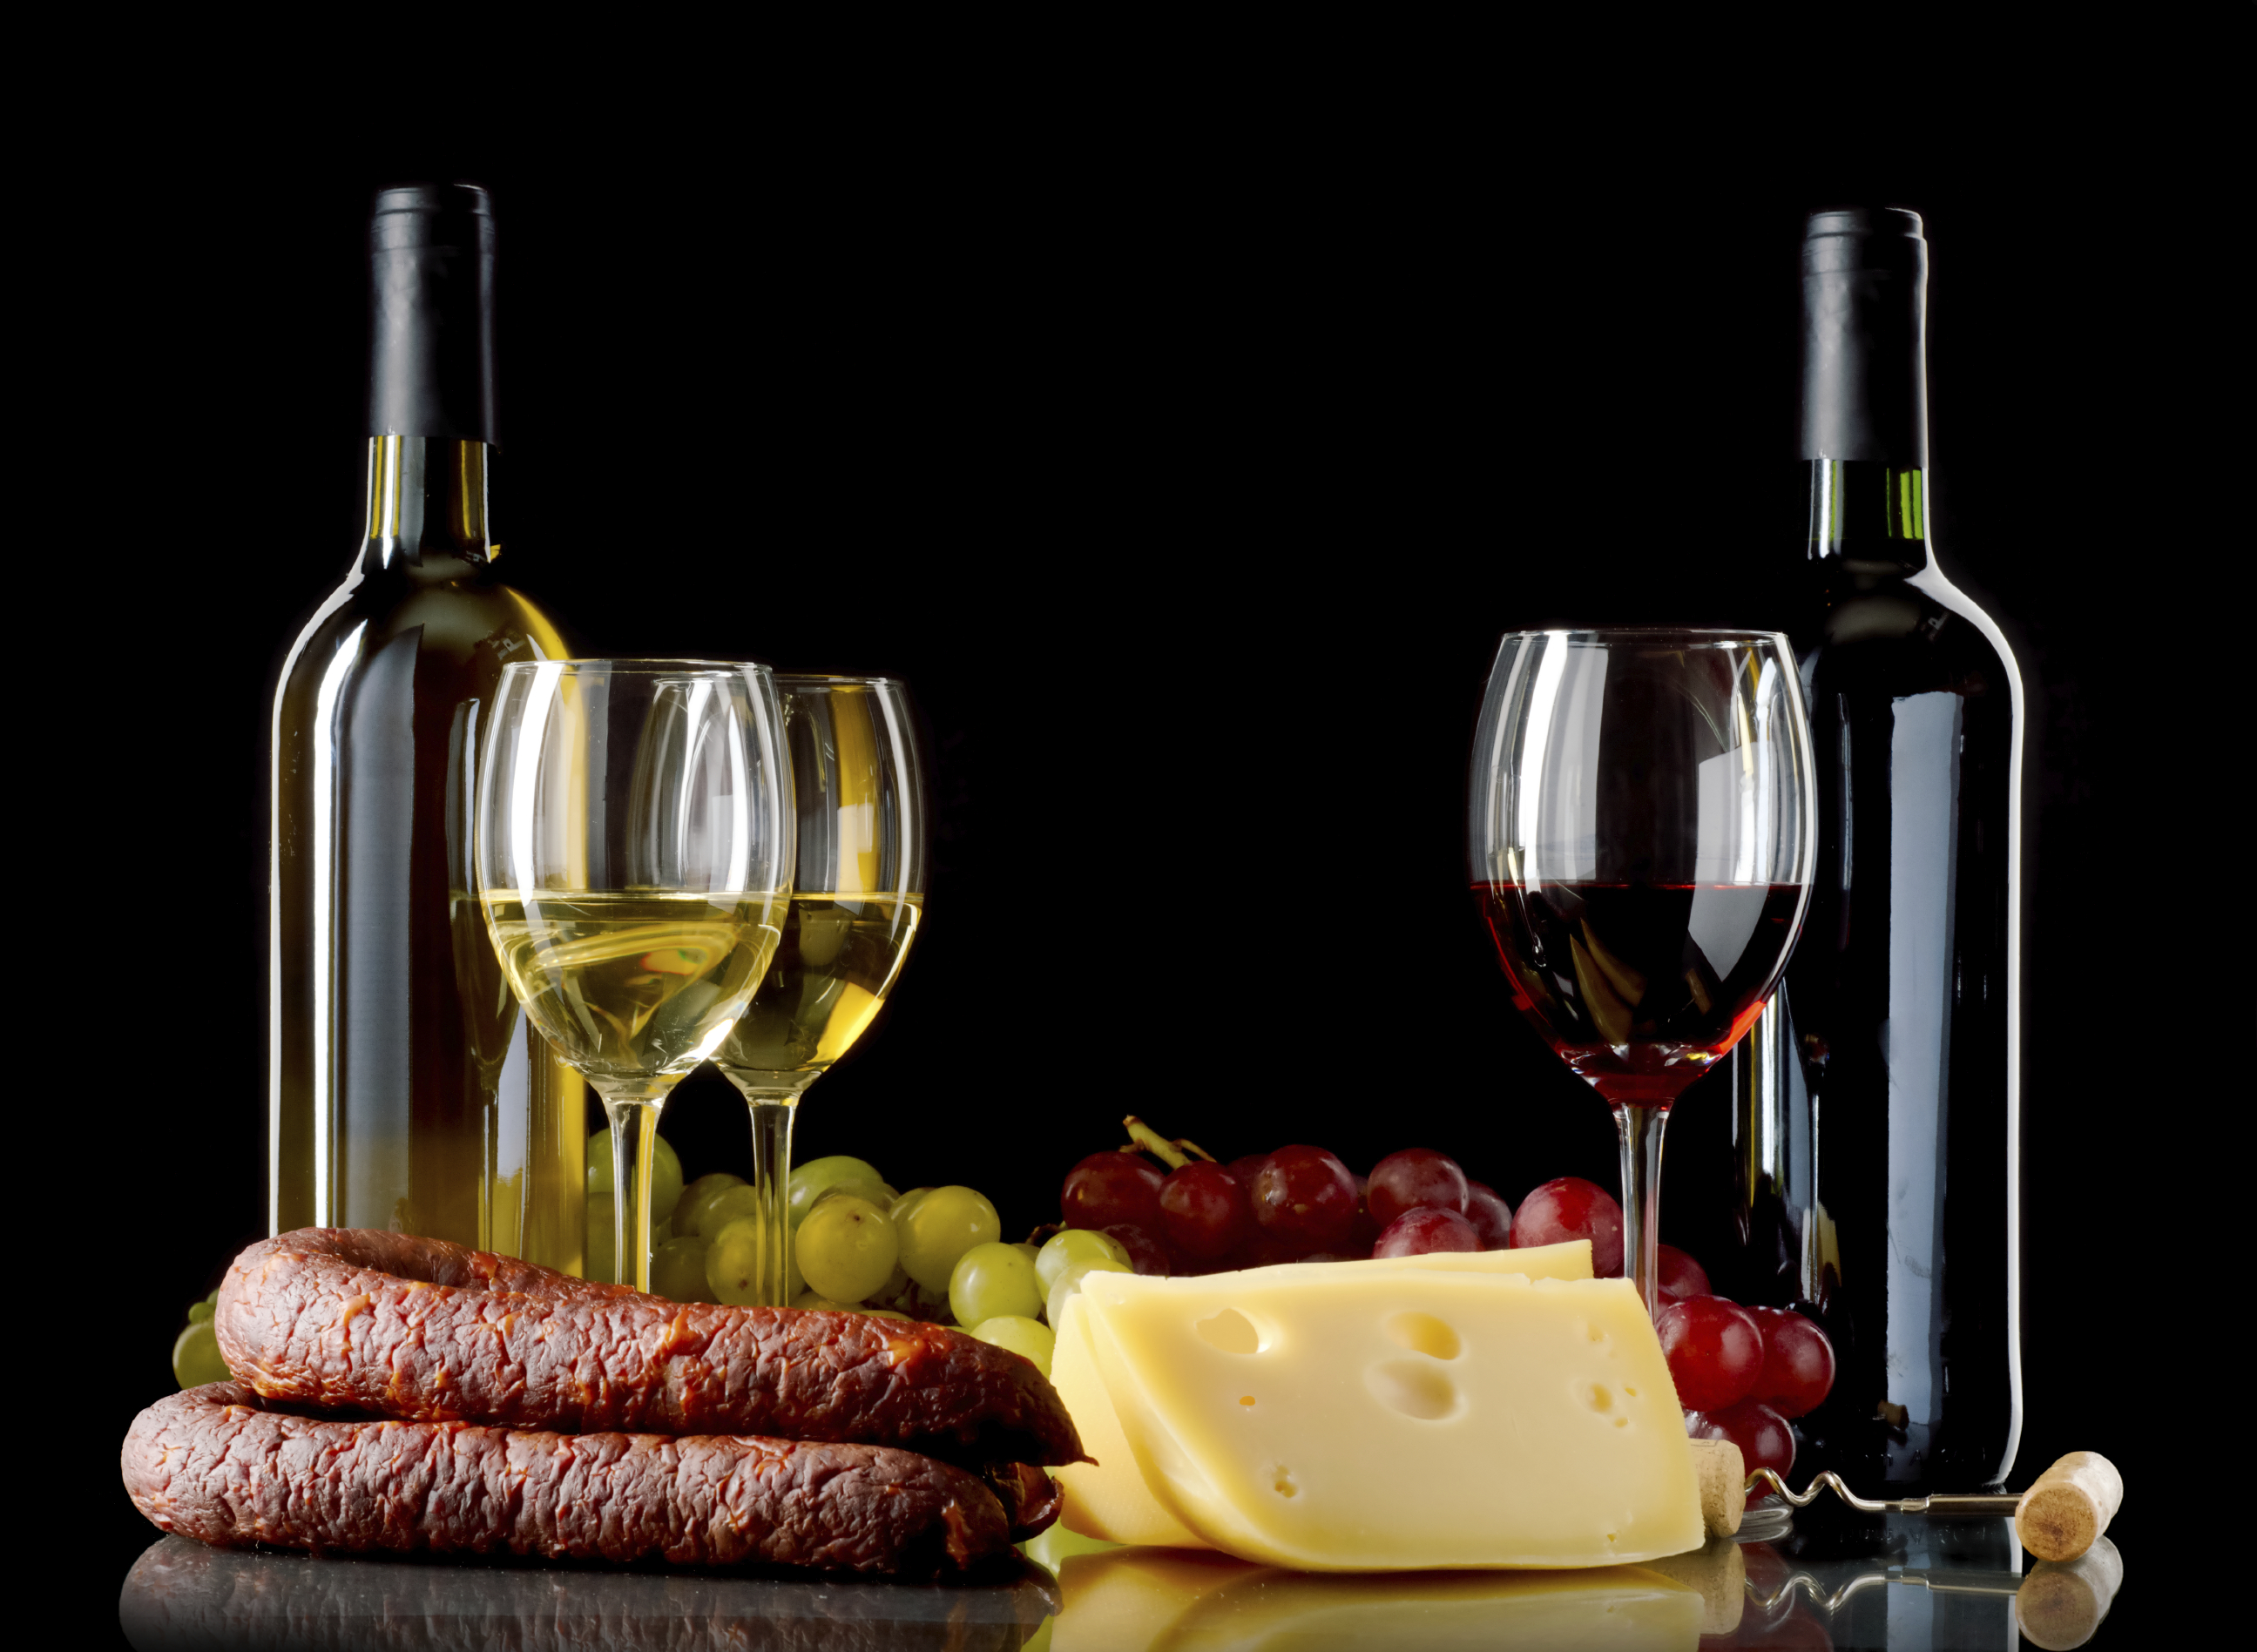 White wine, red wine grapes, cheese and sausage, fat and wine pairing